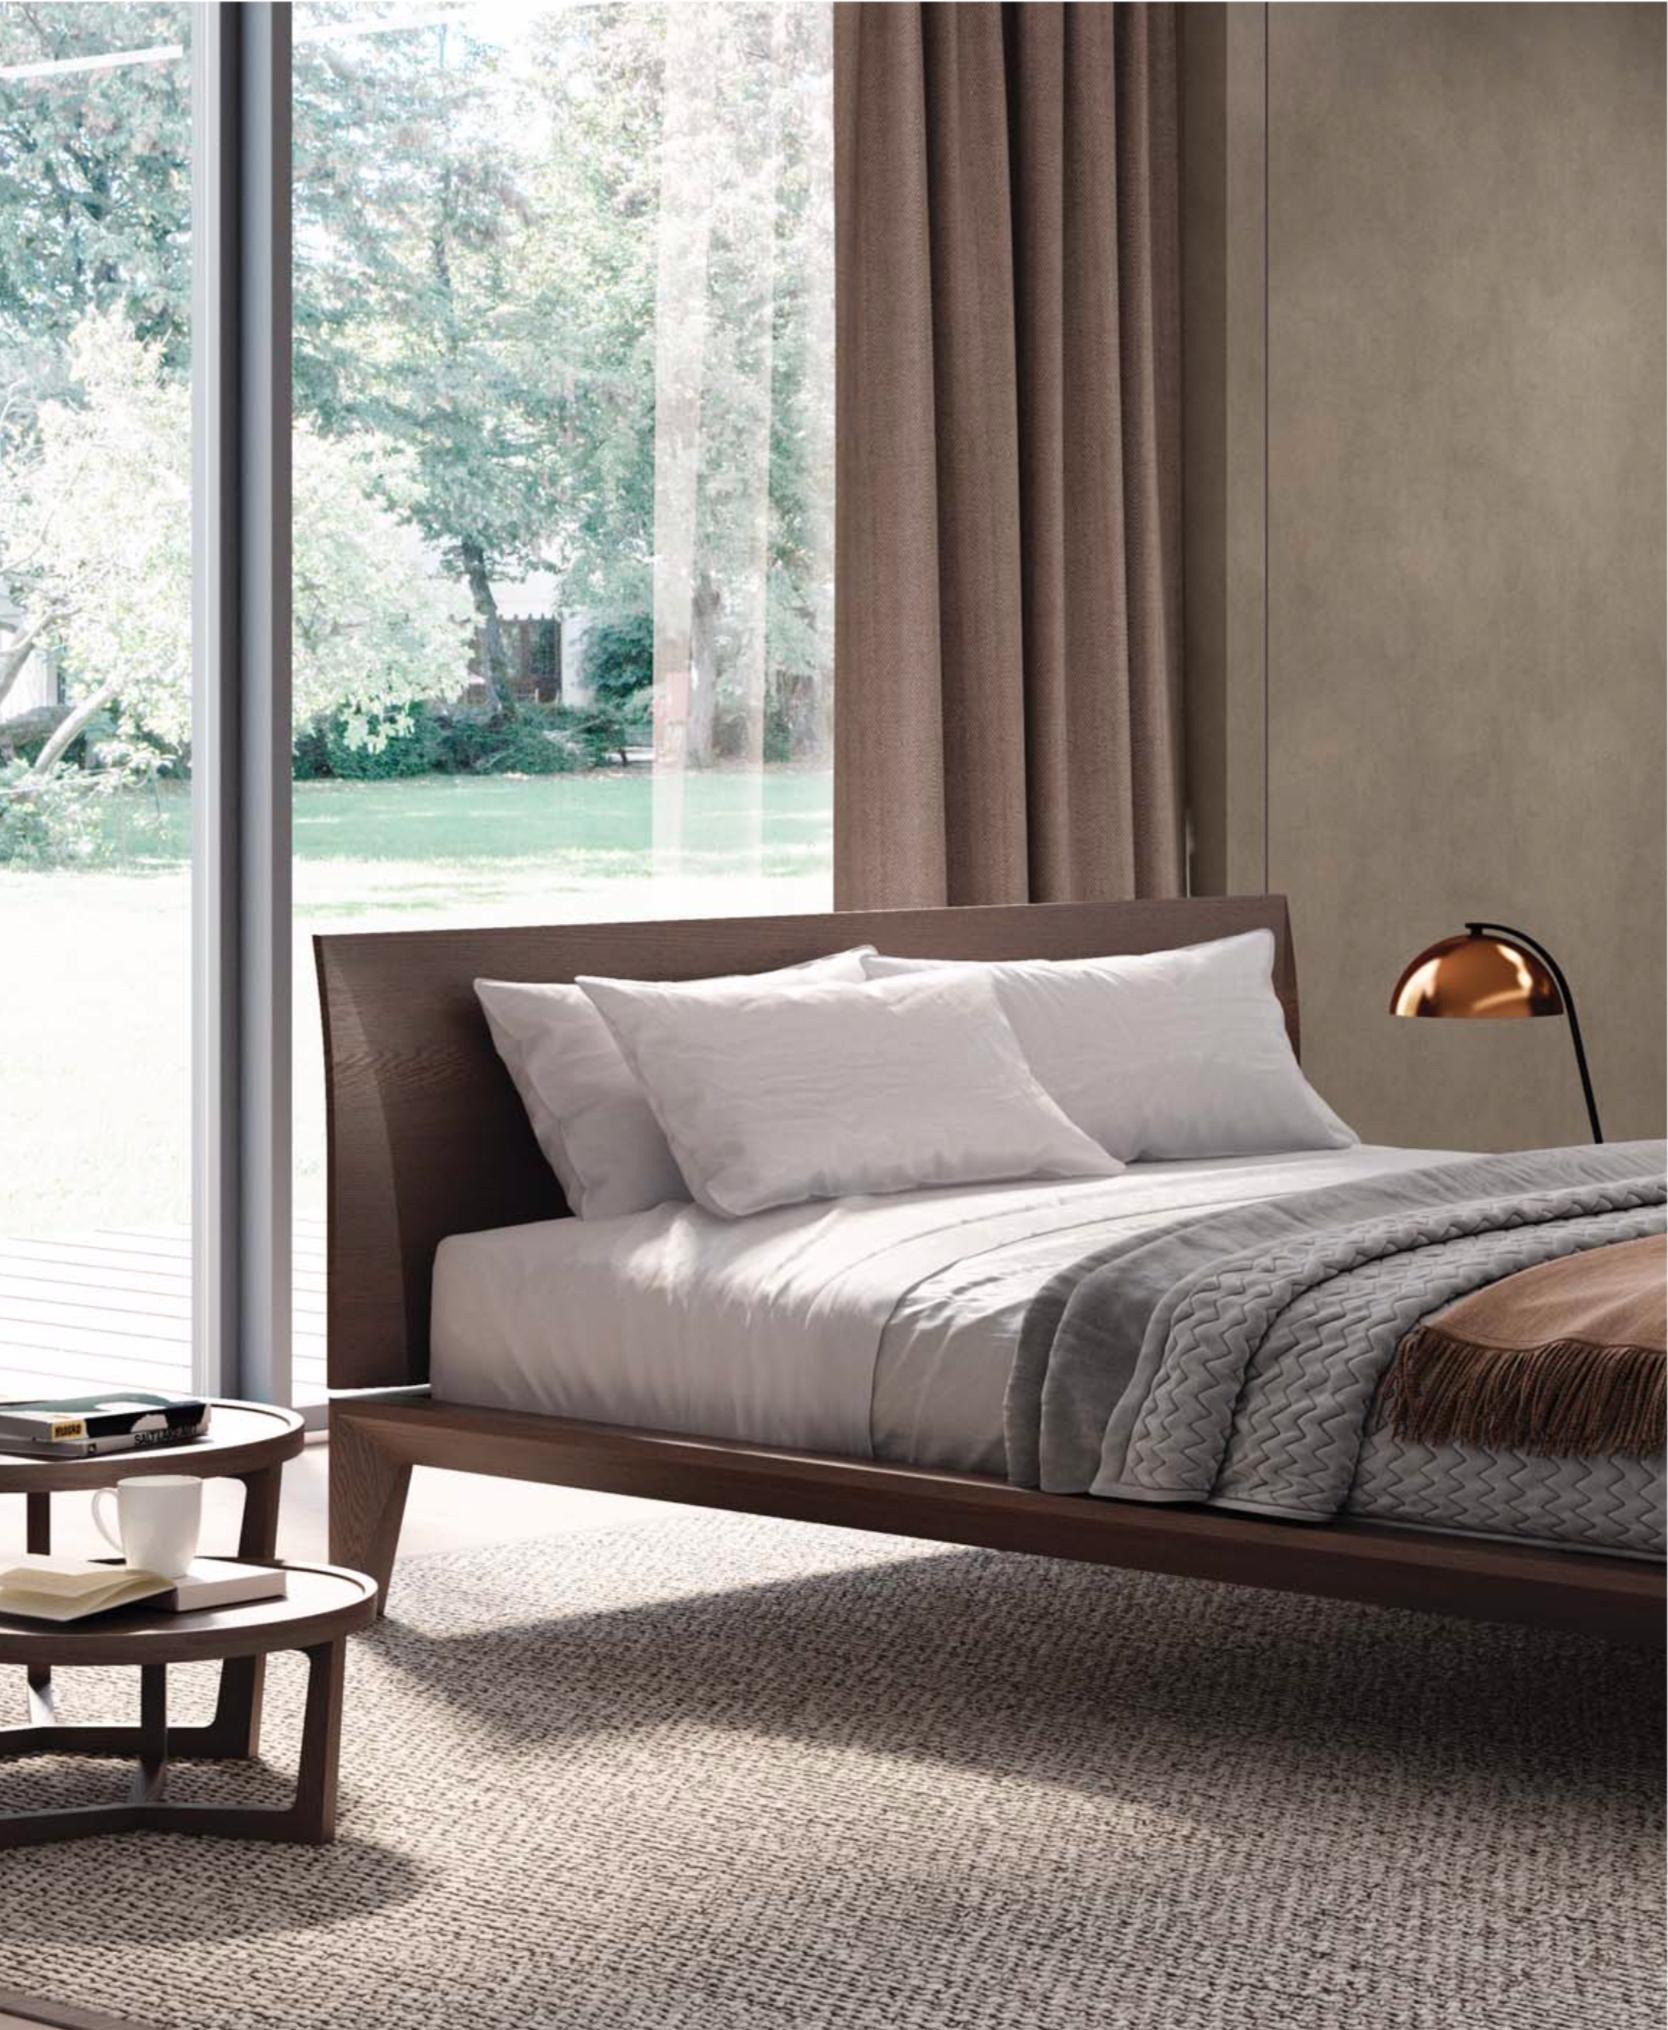 Italian Modern Wood Bed Handmade And Designed In Italy Wood Or Leather Queen for 15 Some of the Coolest Concepts of How to Craft Modern Italian Bedroom Set